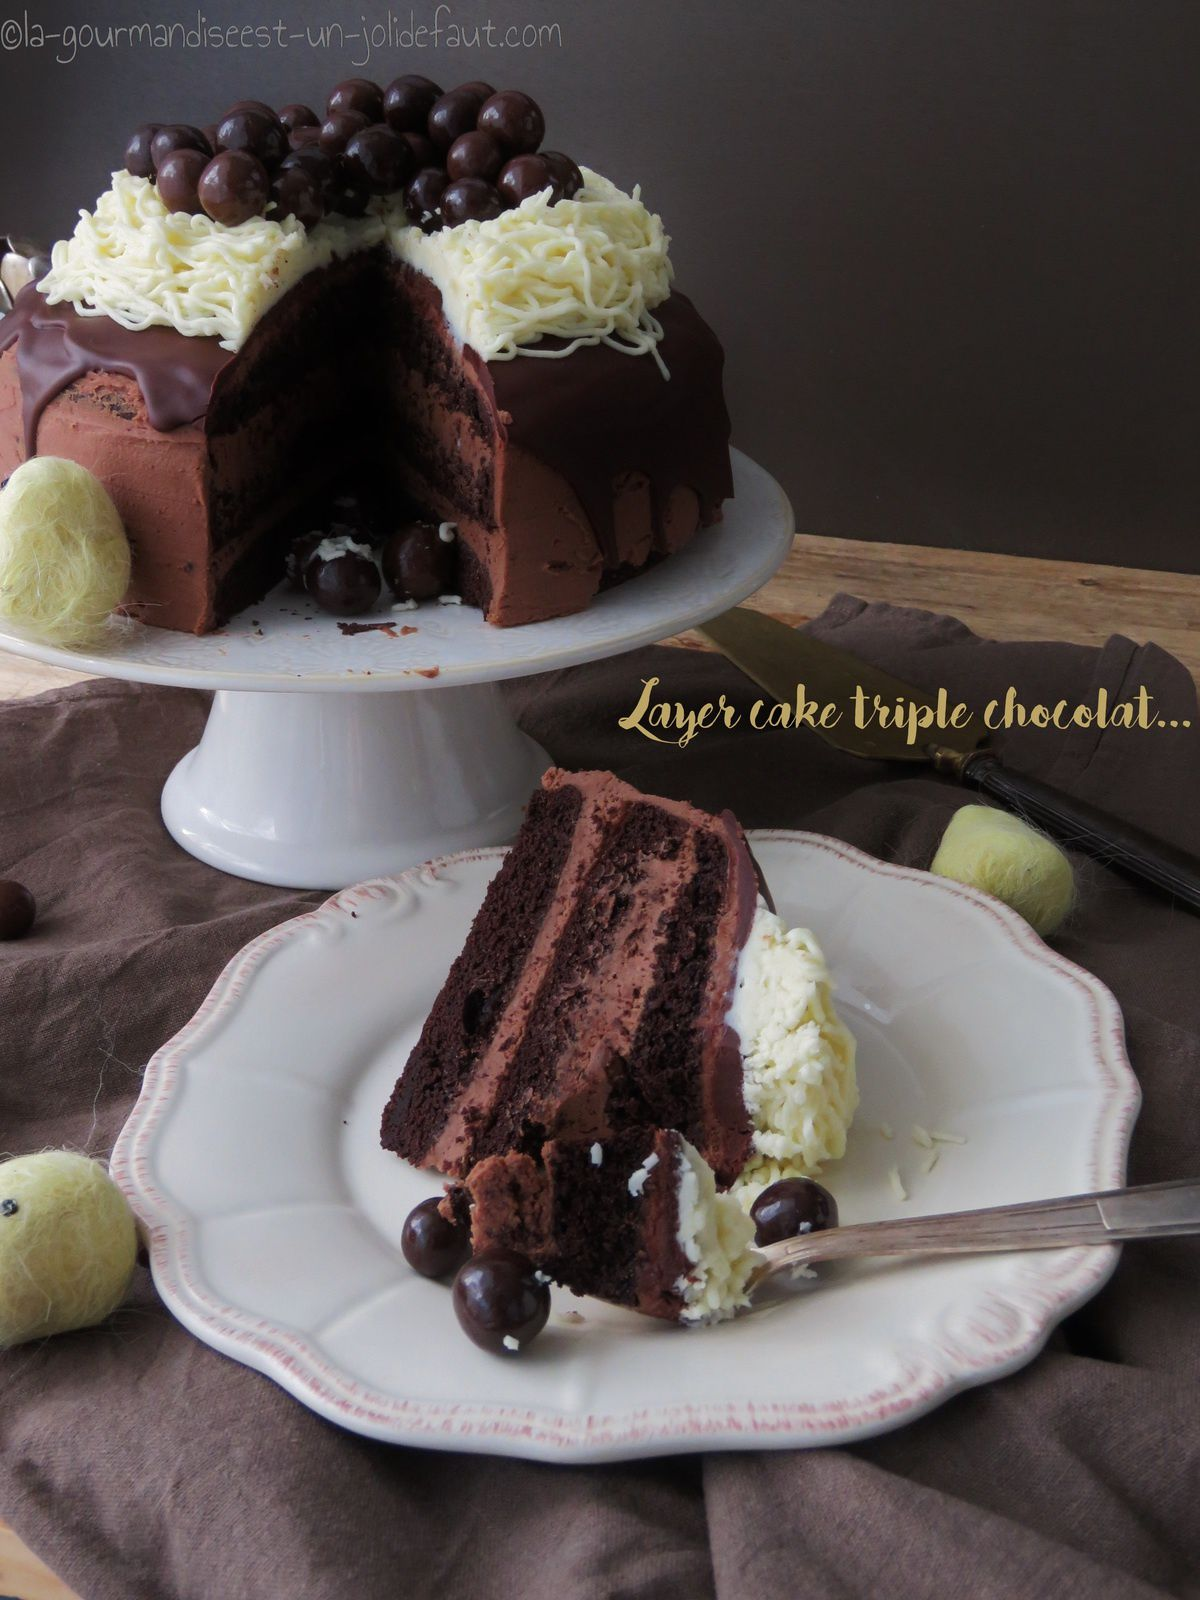 Layer cake triple chocolat